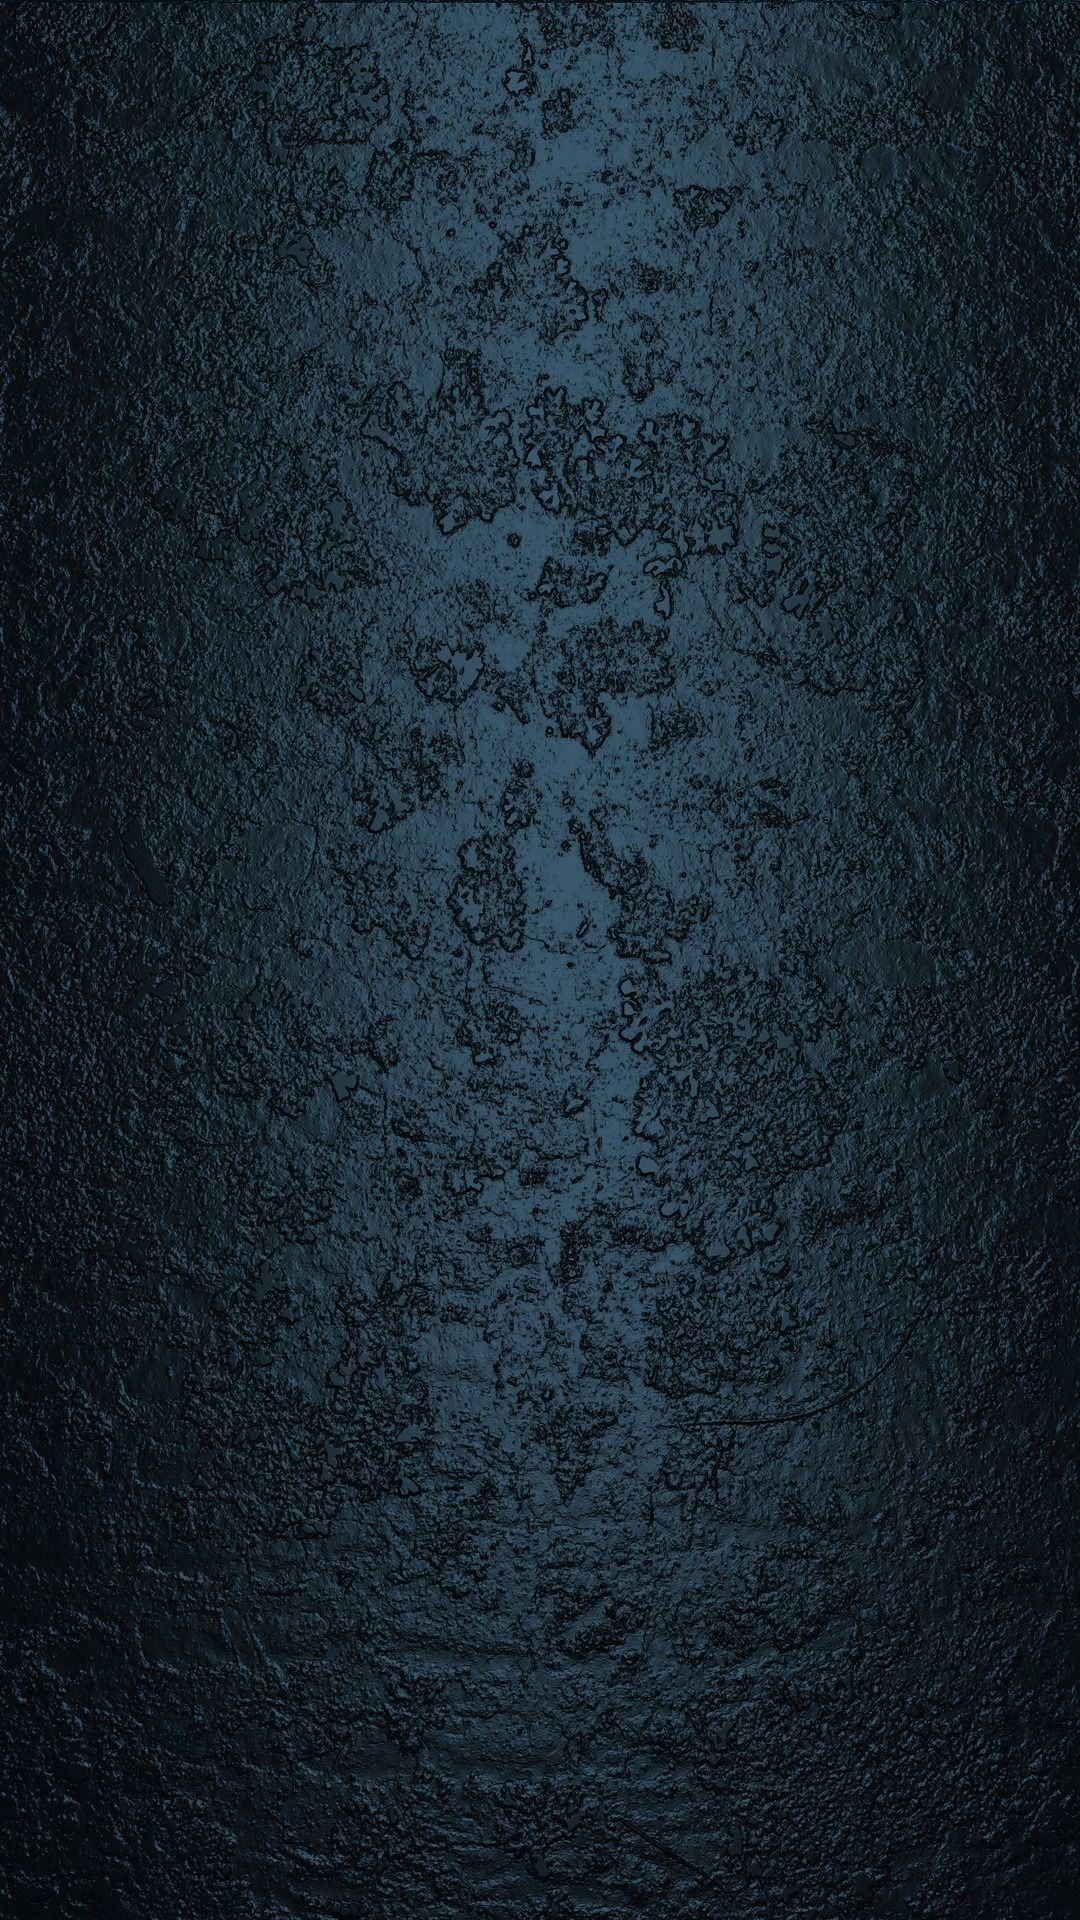 Pin On Artistic Wallpapers Android